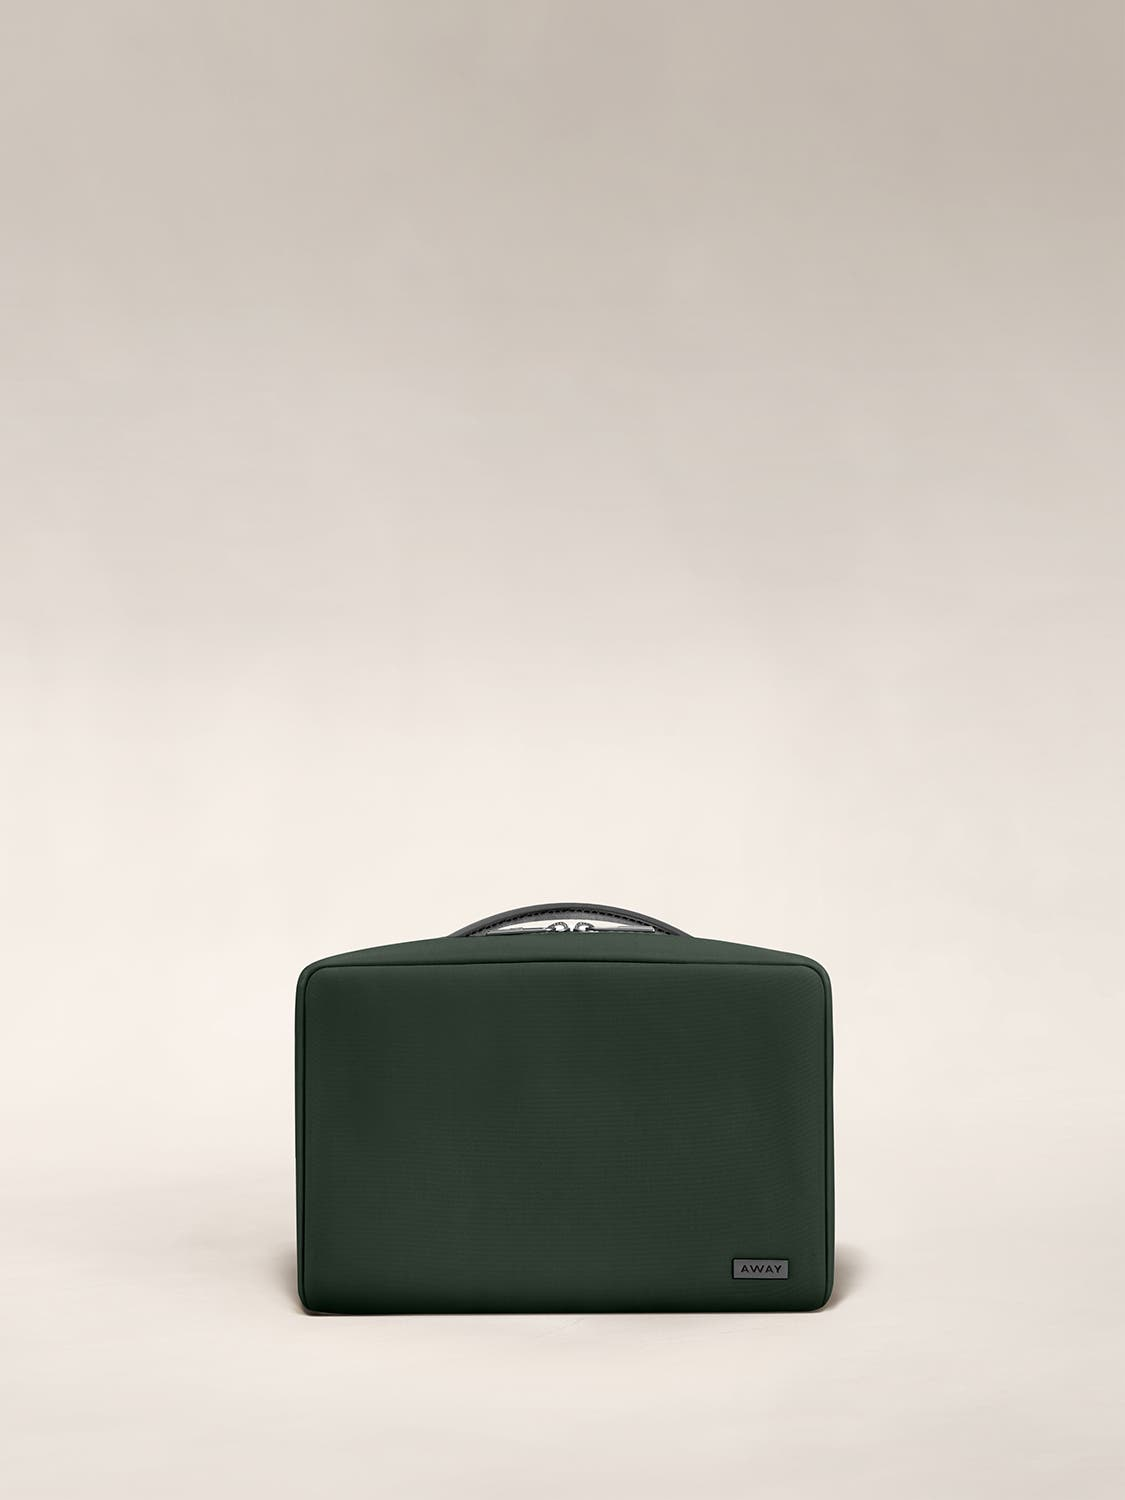 Small travel toiletry bag in the color green by Away.